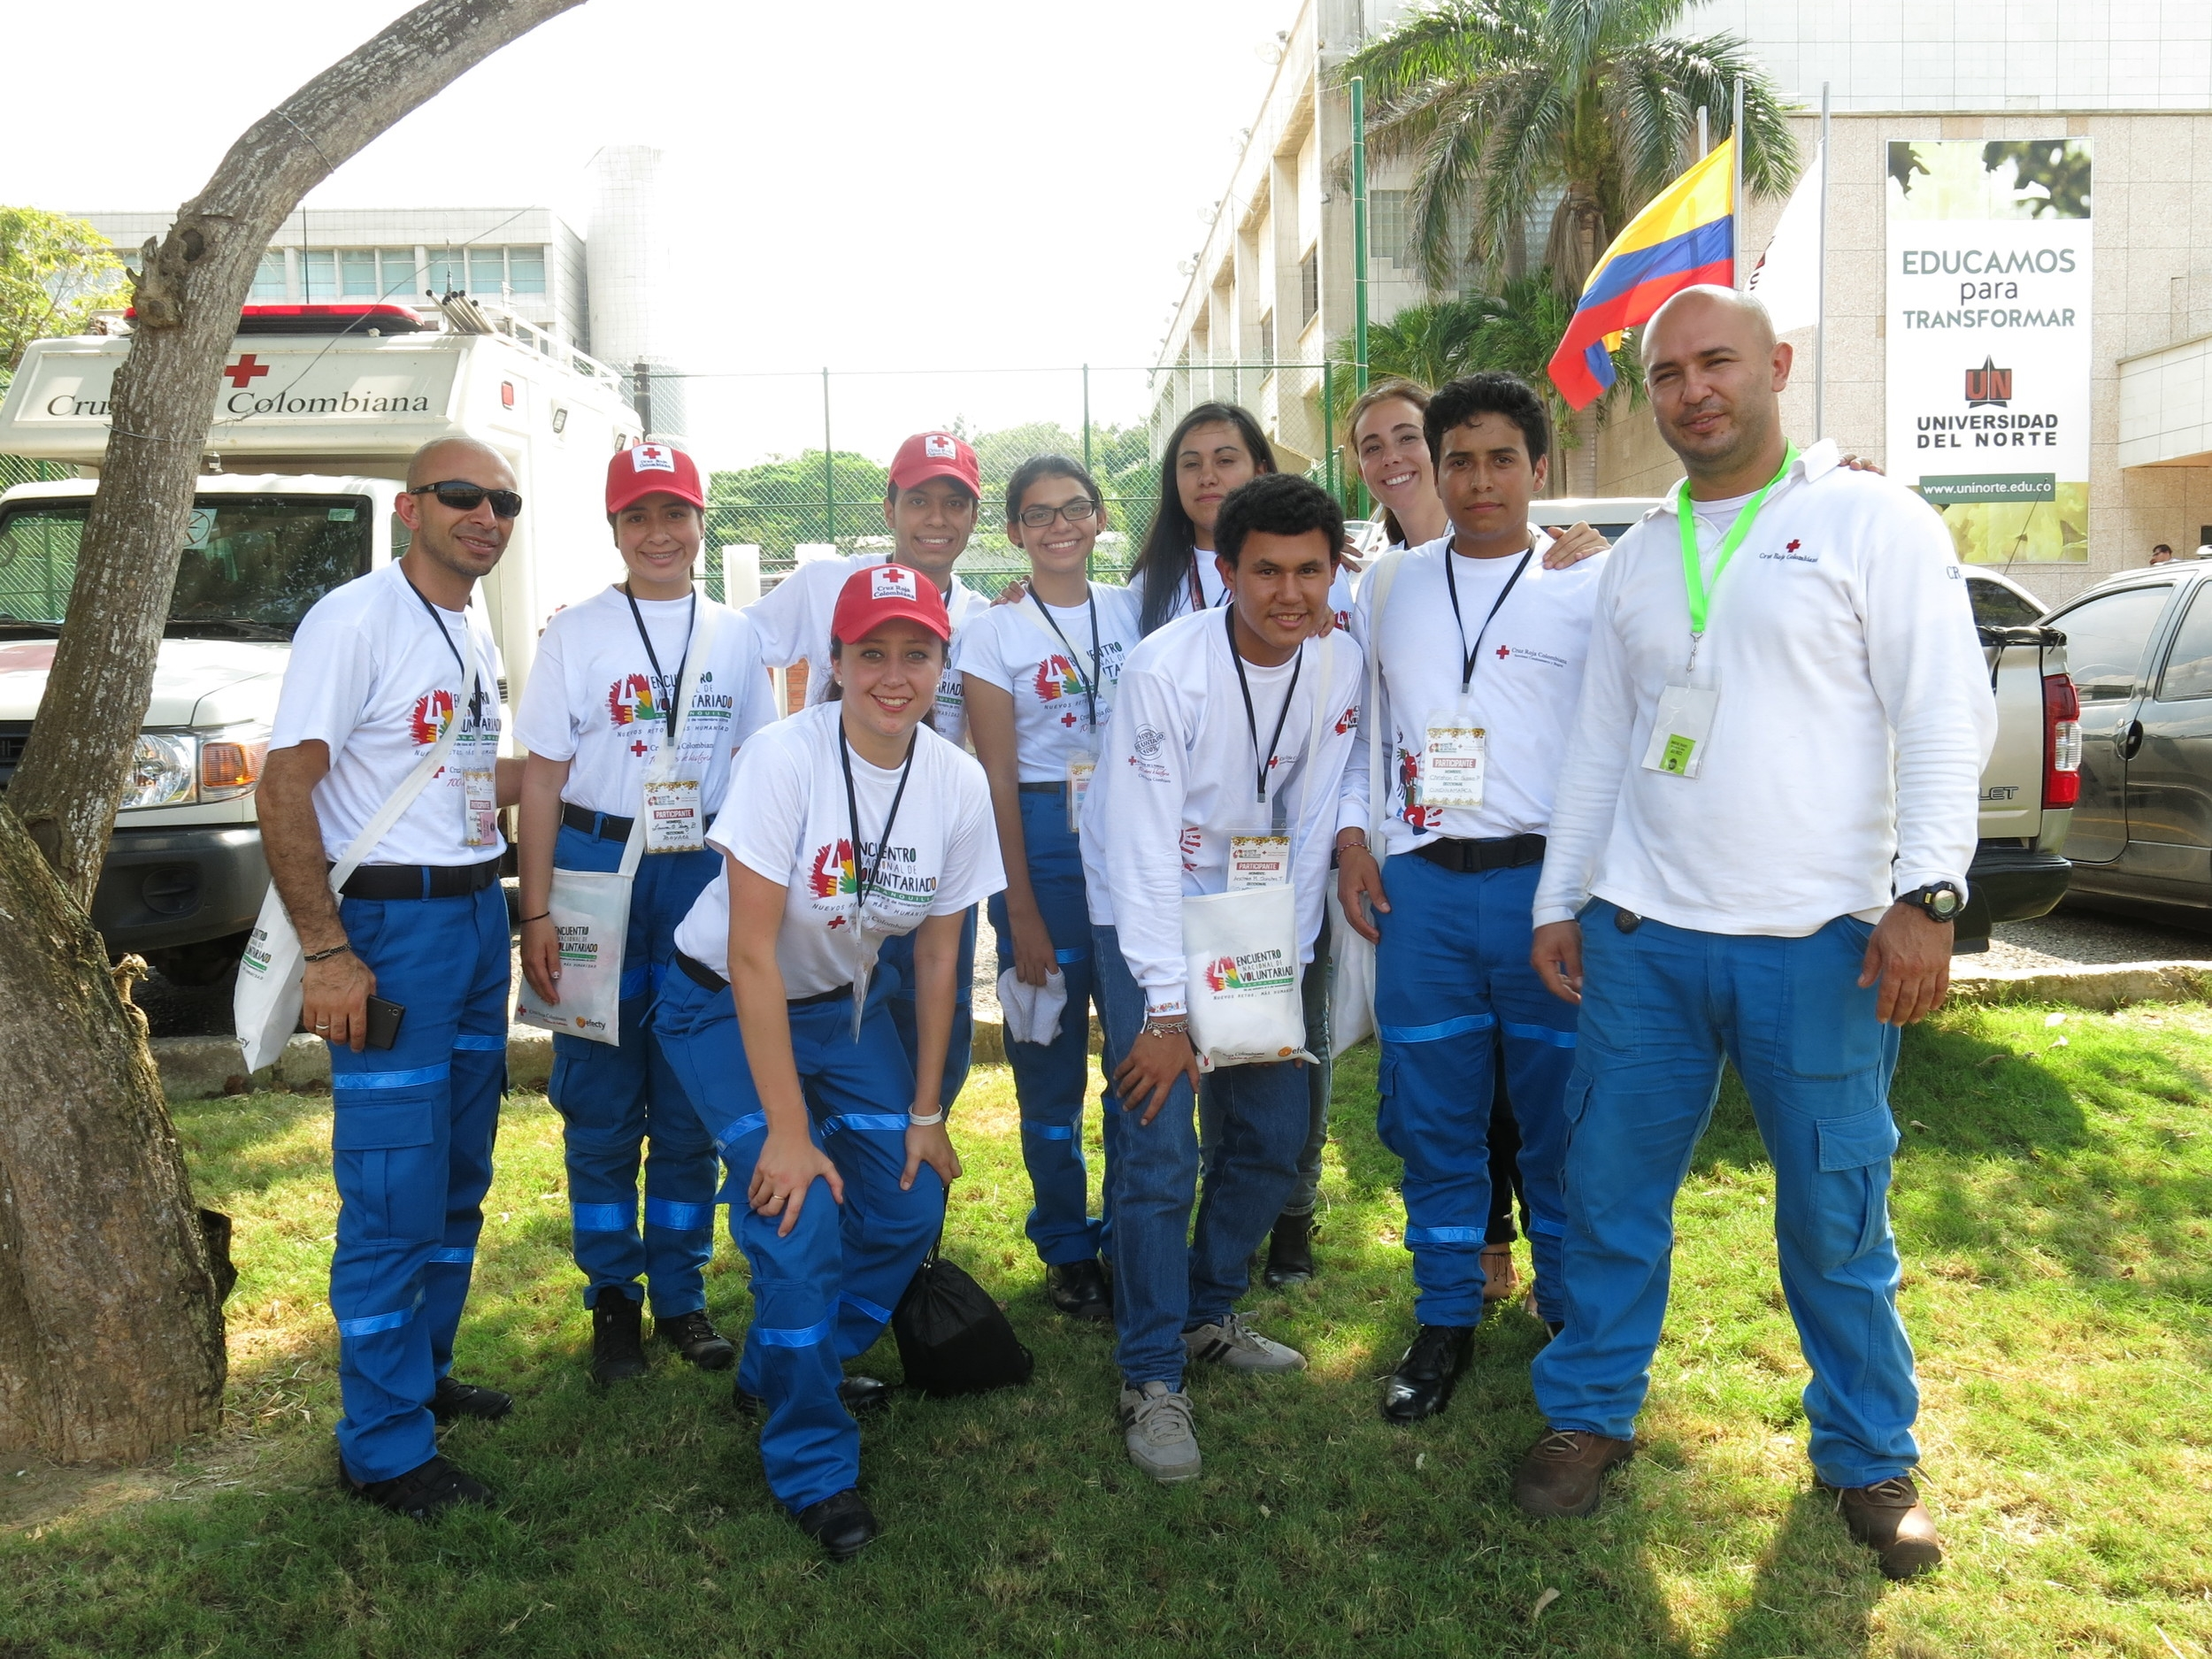 Voluntarios, volunteers